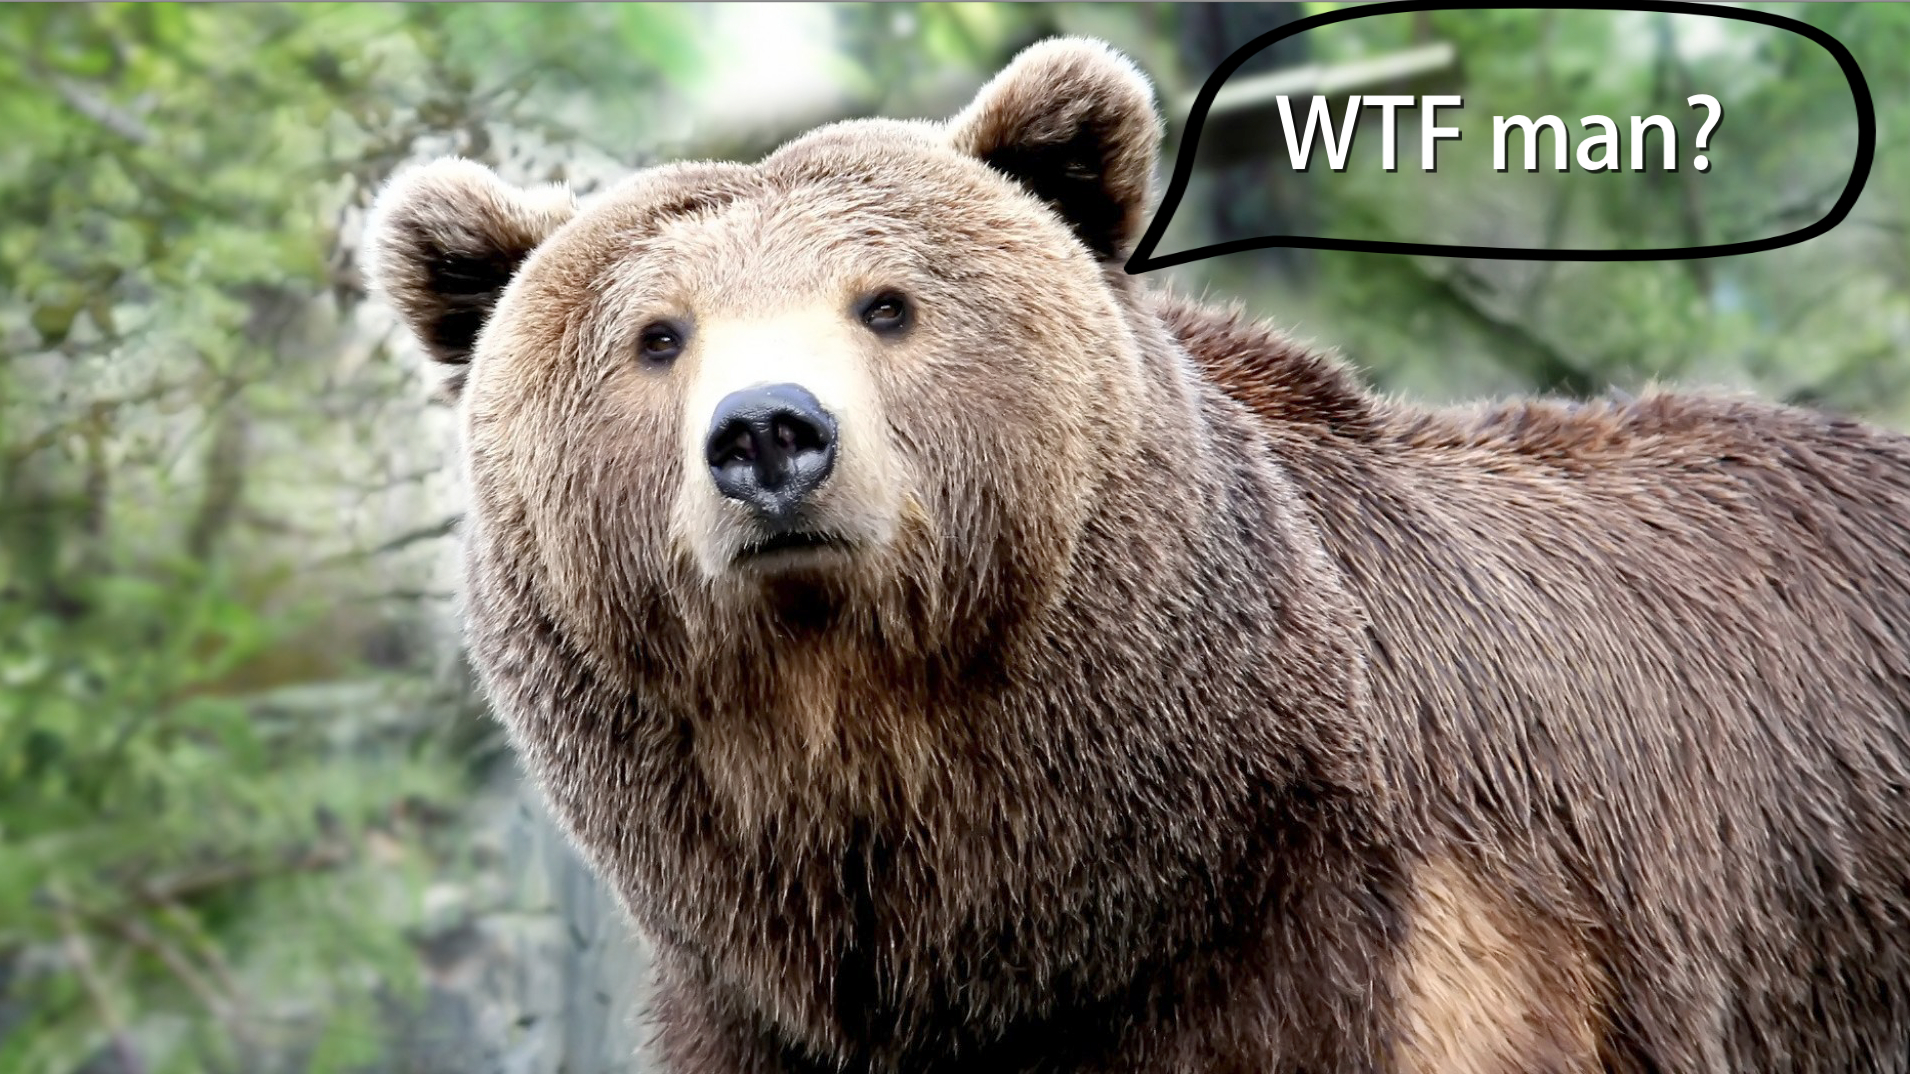 Idaho to Open Grizzly Hunting Season So Yokels Can Kill One Male Bear in Name of 'Management'